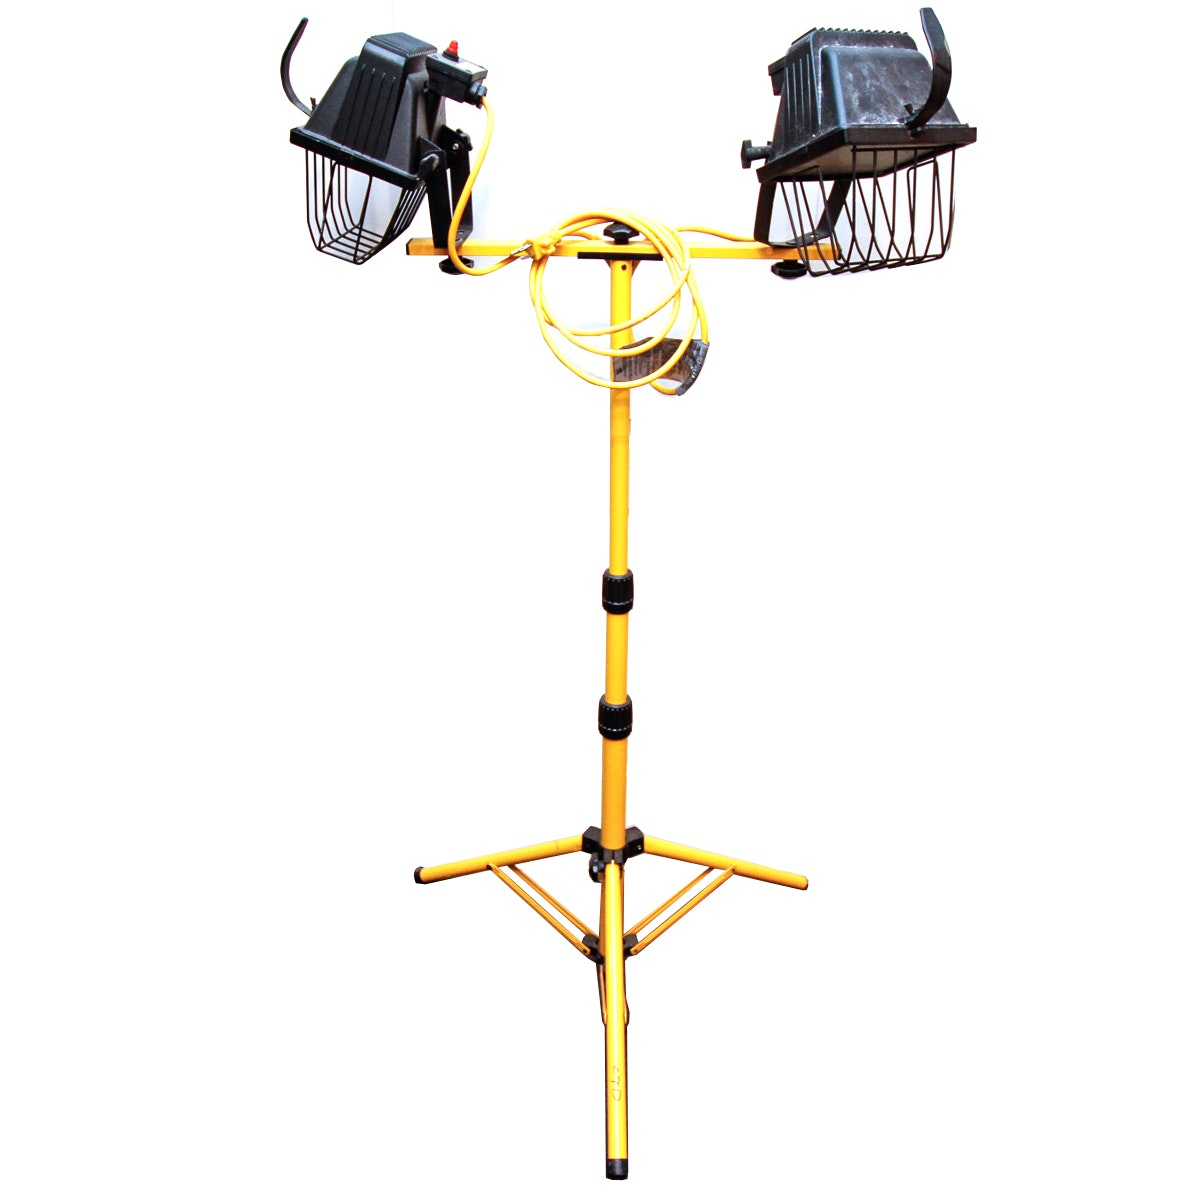 Industrial Two Headed Light with Metal Tripod Frame